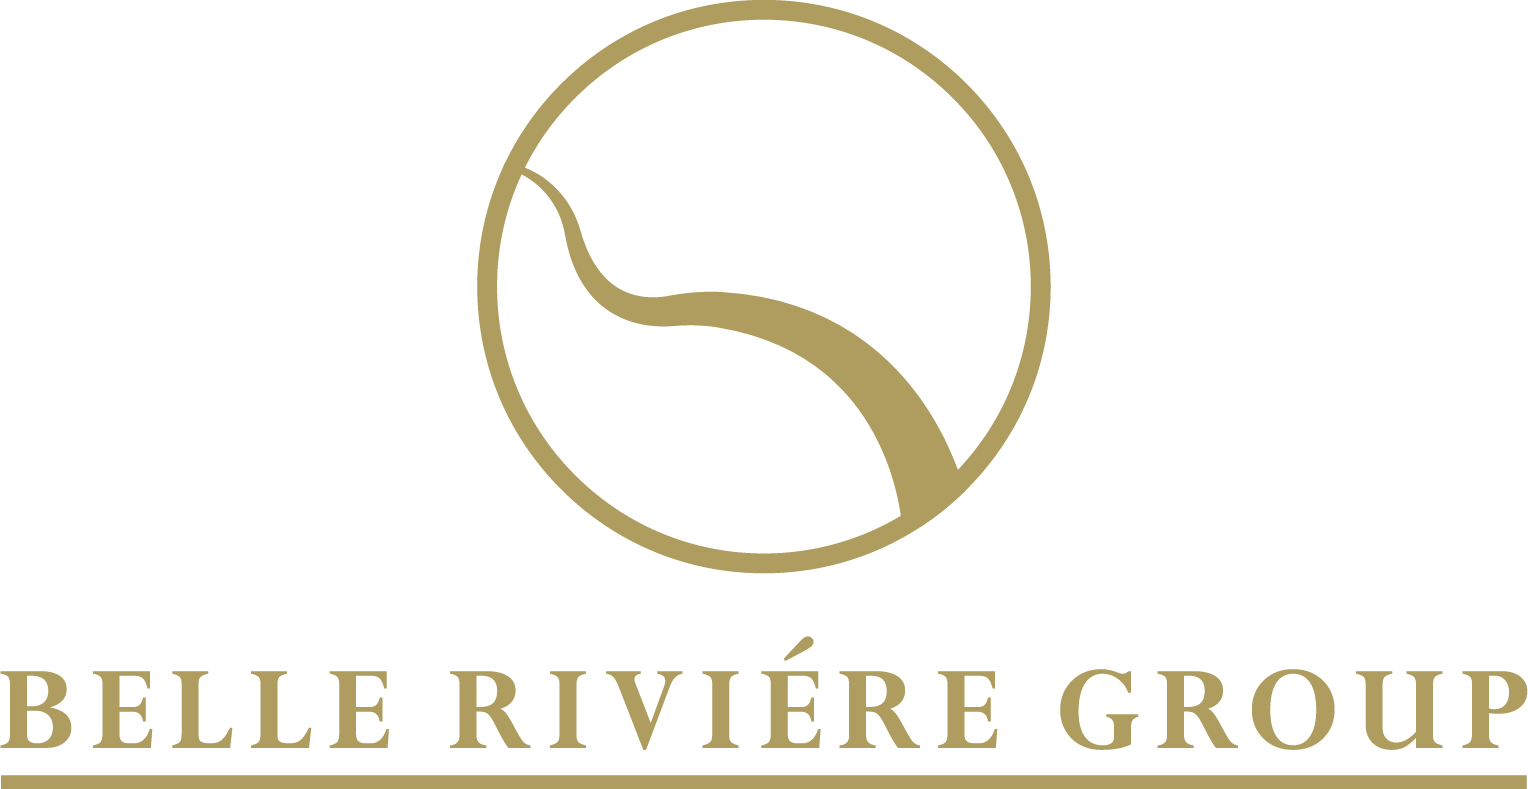 Belle Riviere Group Logo & Brand